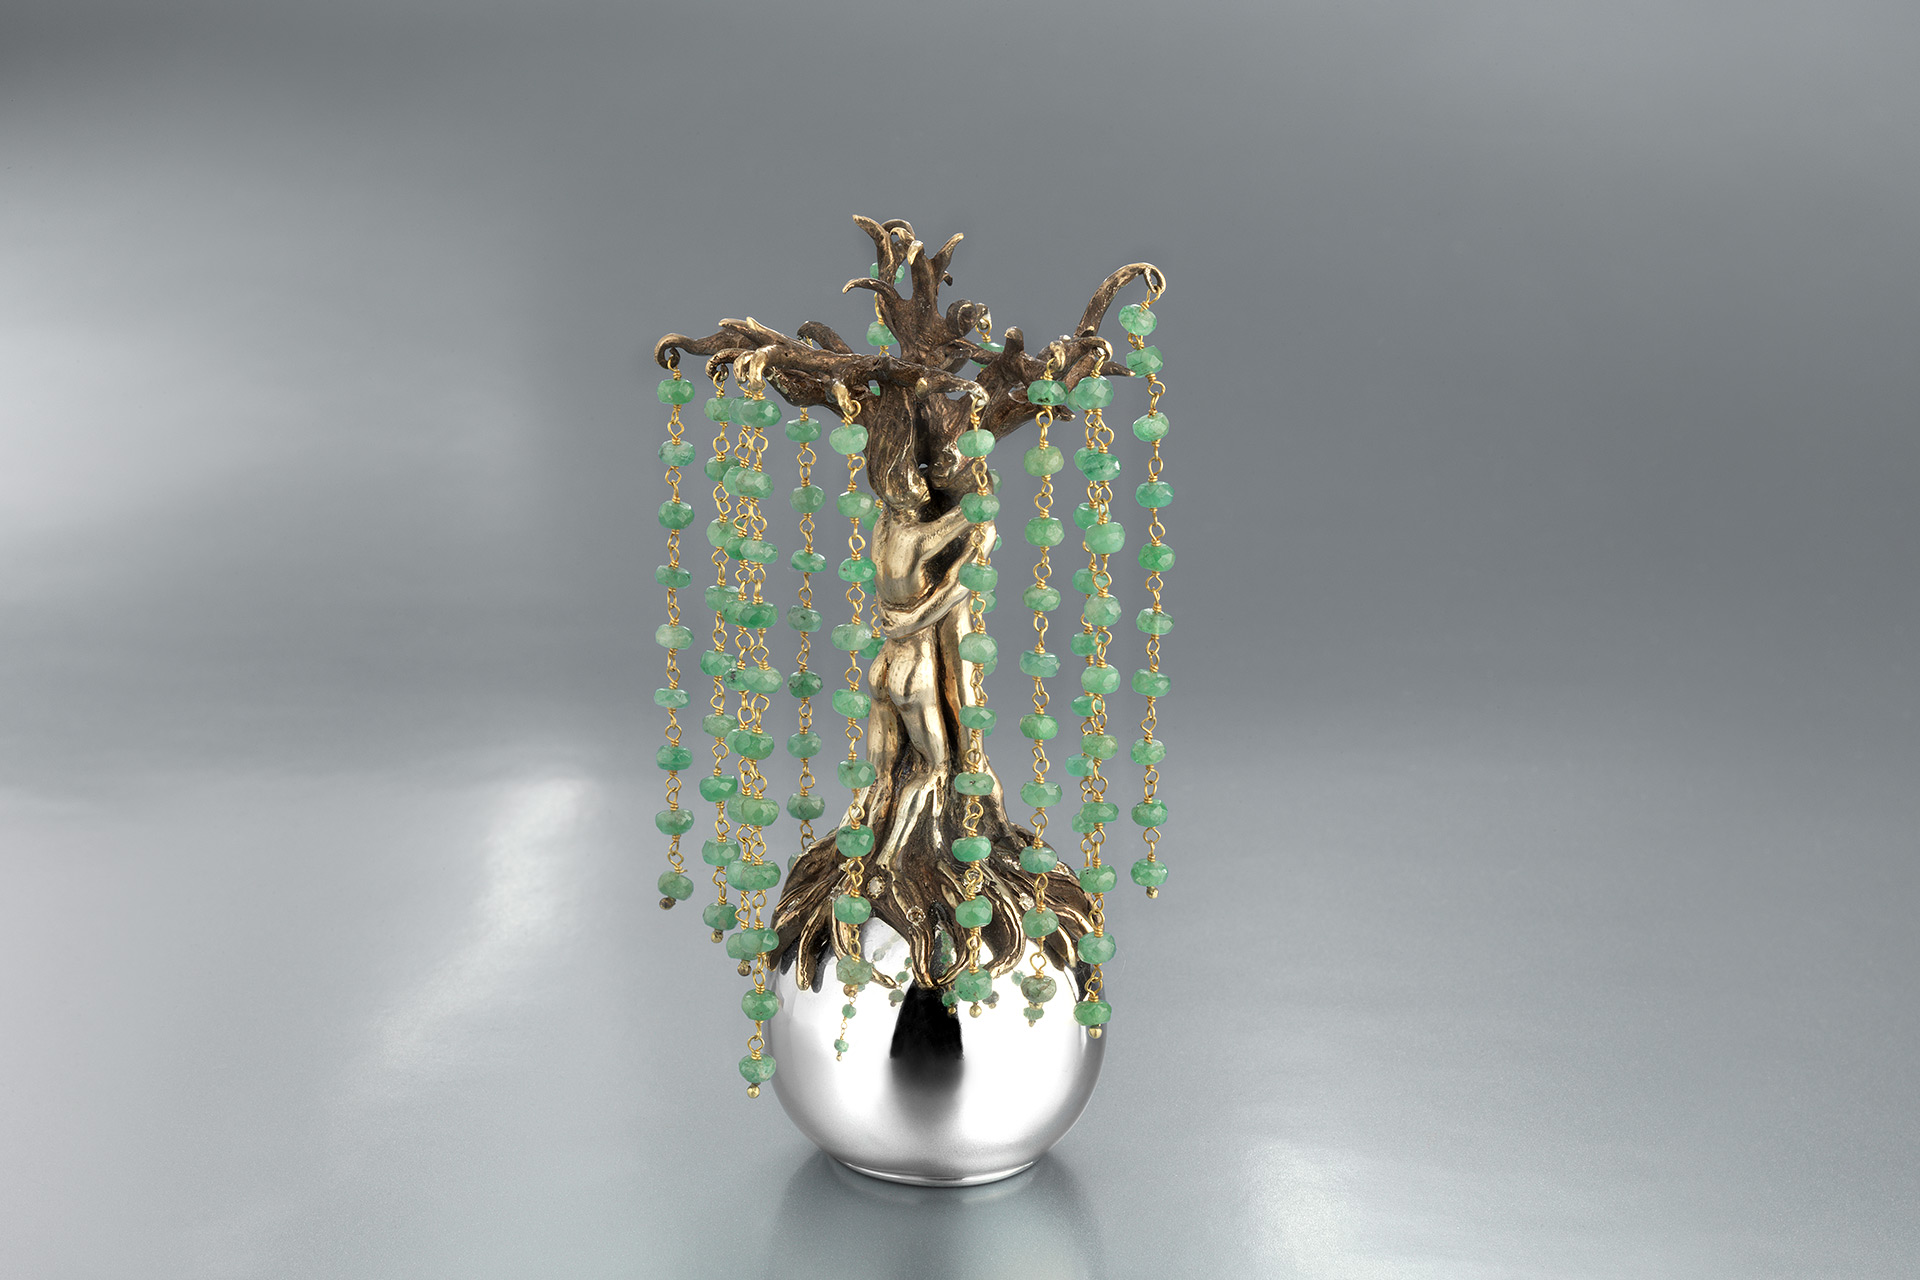 Love sculpture with emeralds - Maria Kovadi